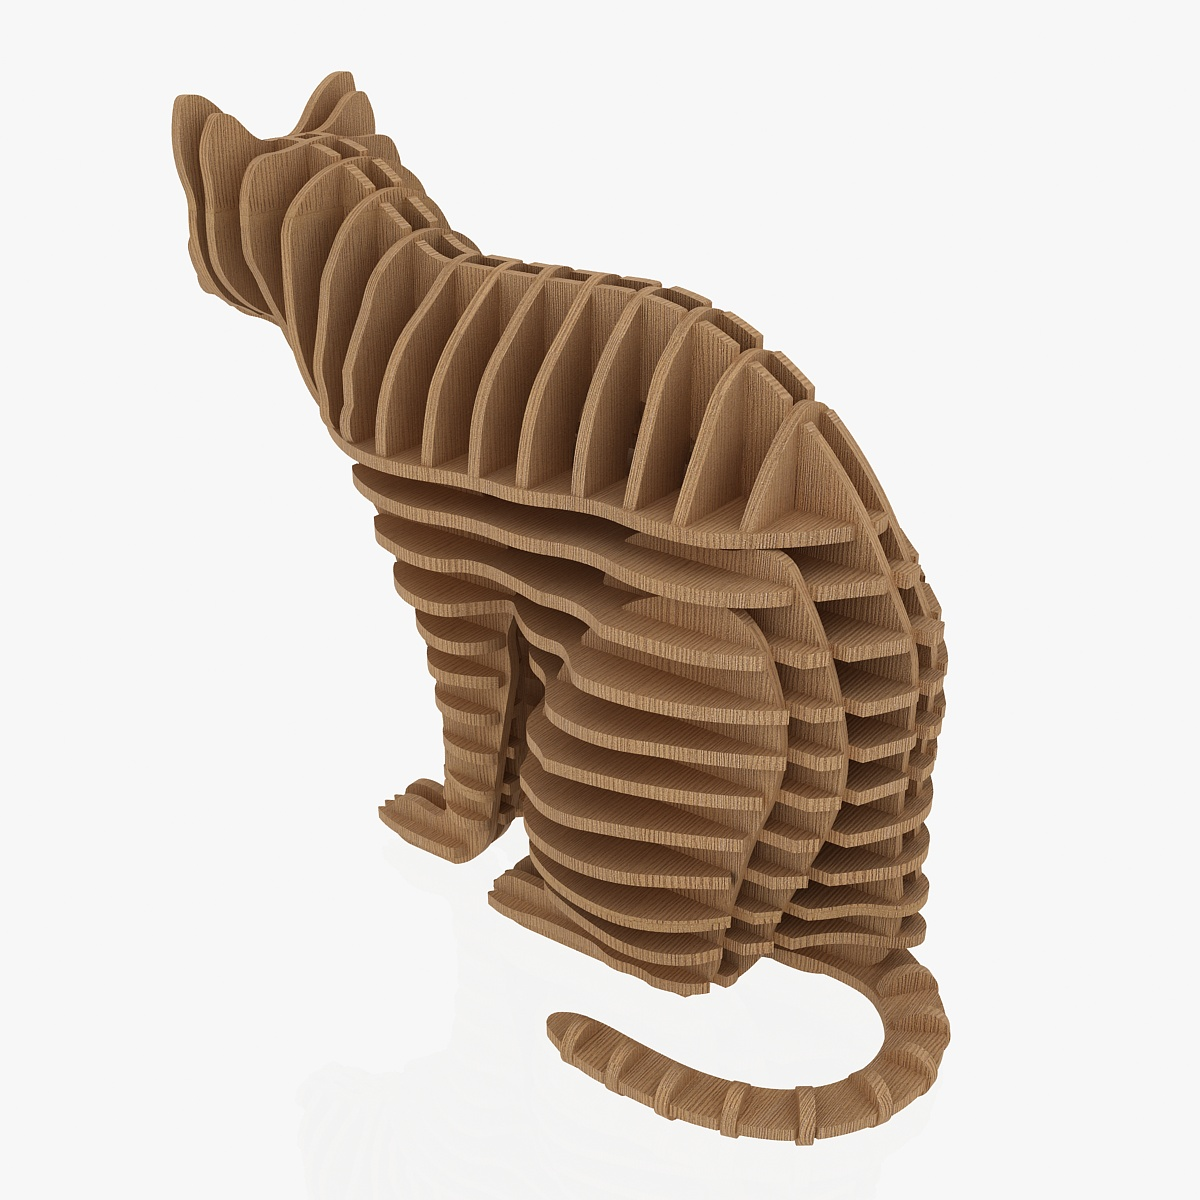 teka-teki kucing 1 3d model 3ds max dxf dwg fbx dae obj 223464